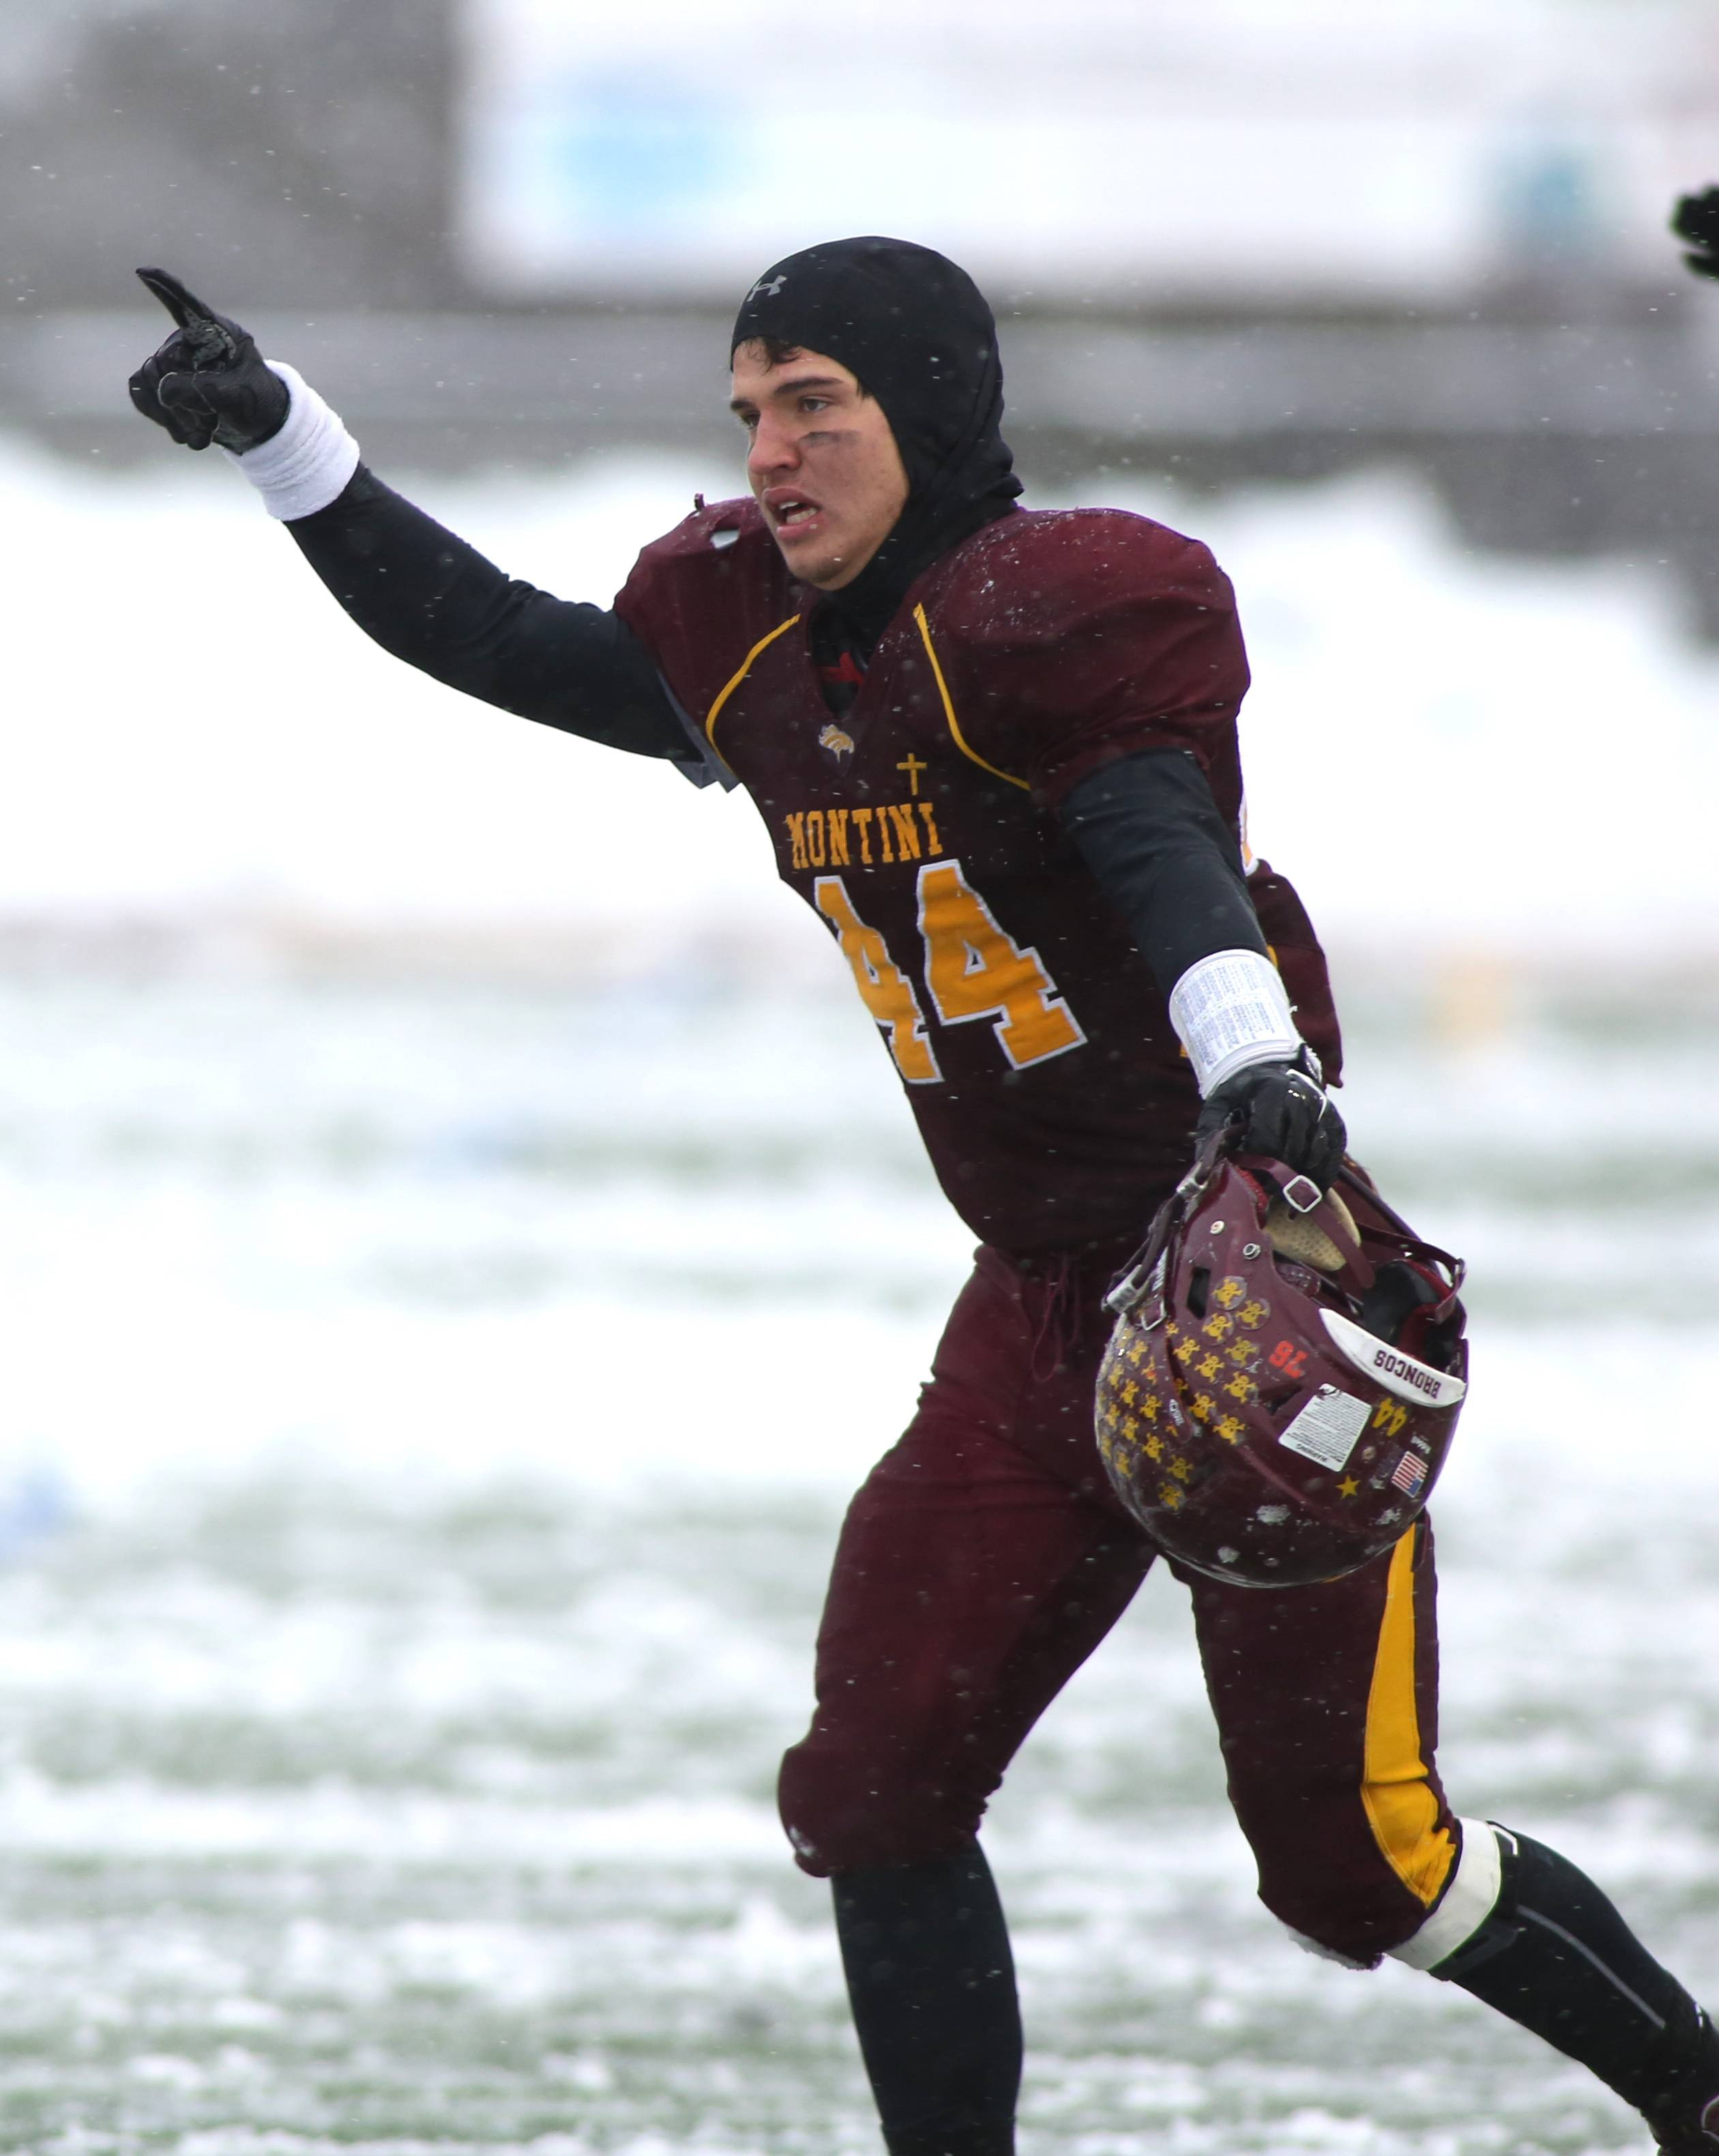 Montini will meet Crete-Monee in the Class 6A football championship game at 1 p.m. Saturday in DeKalb.